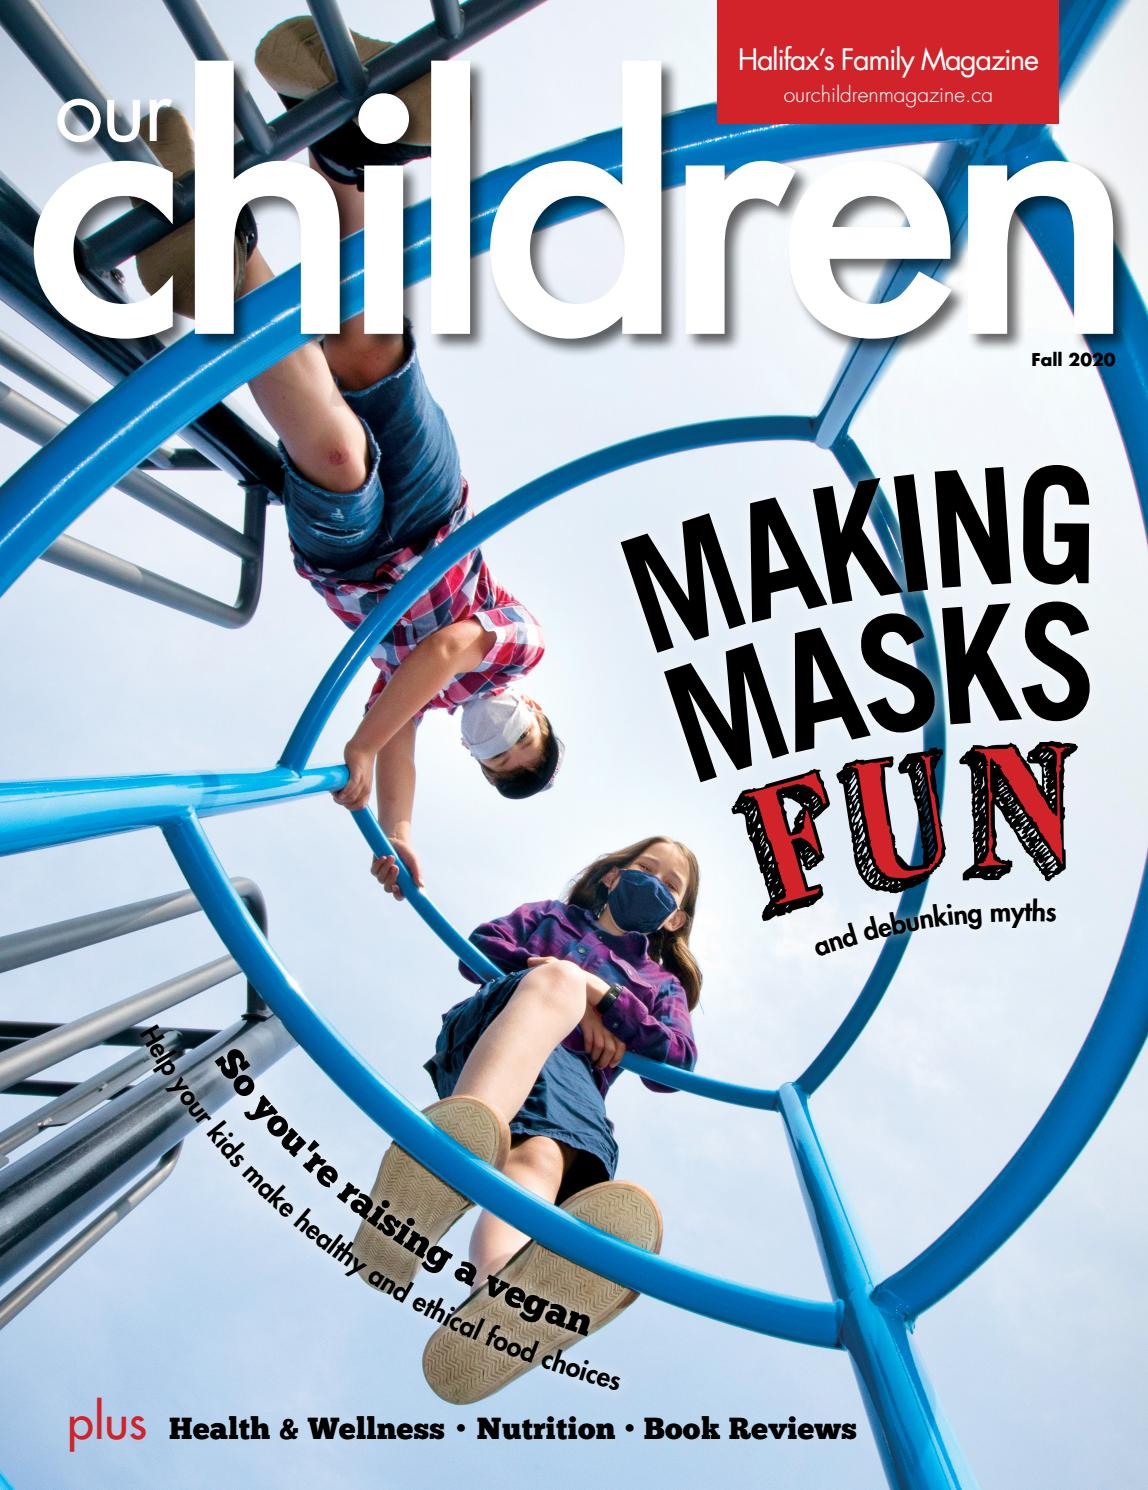 Our Children Fall 2020 By Metro Guide Publishing Issuu